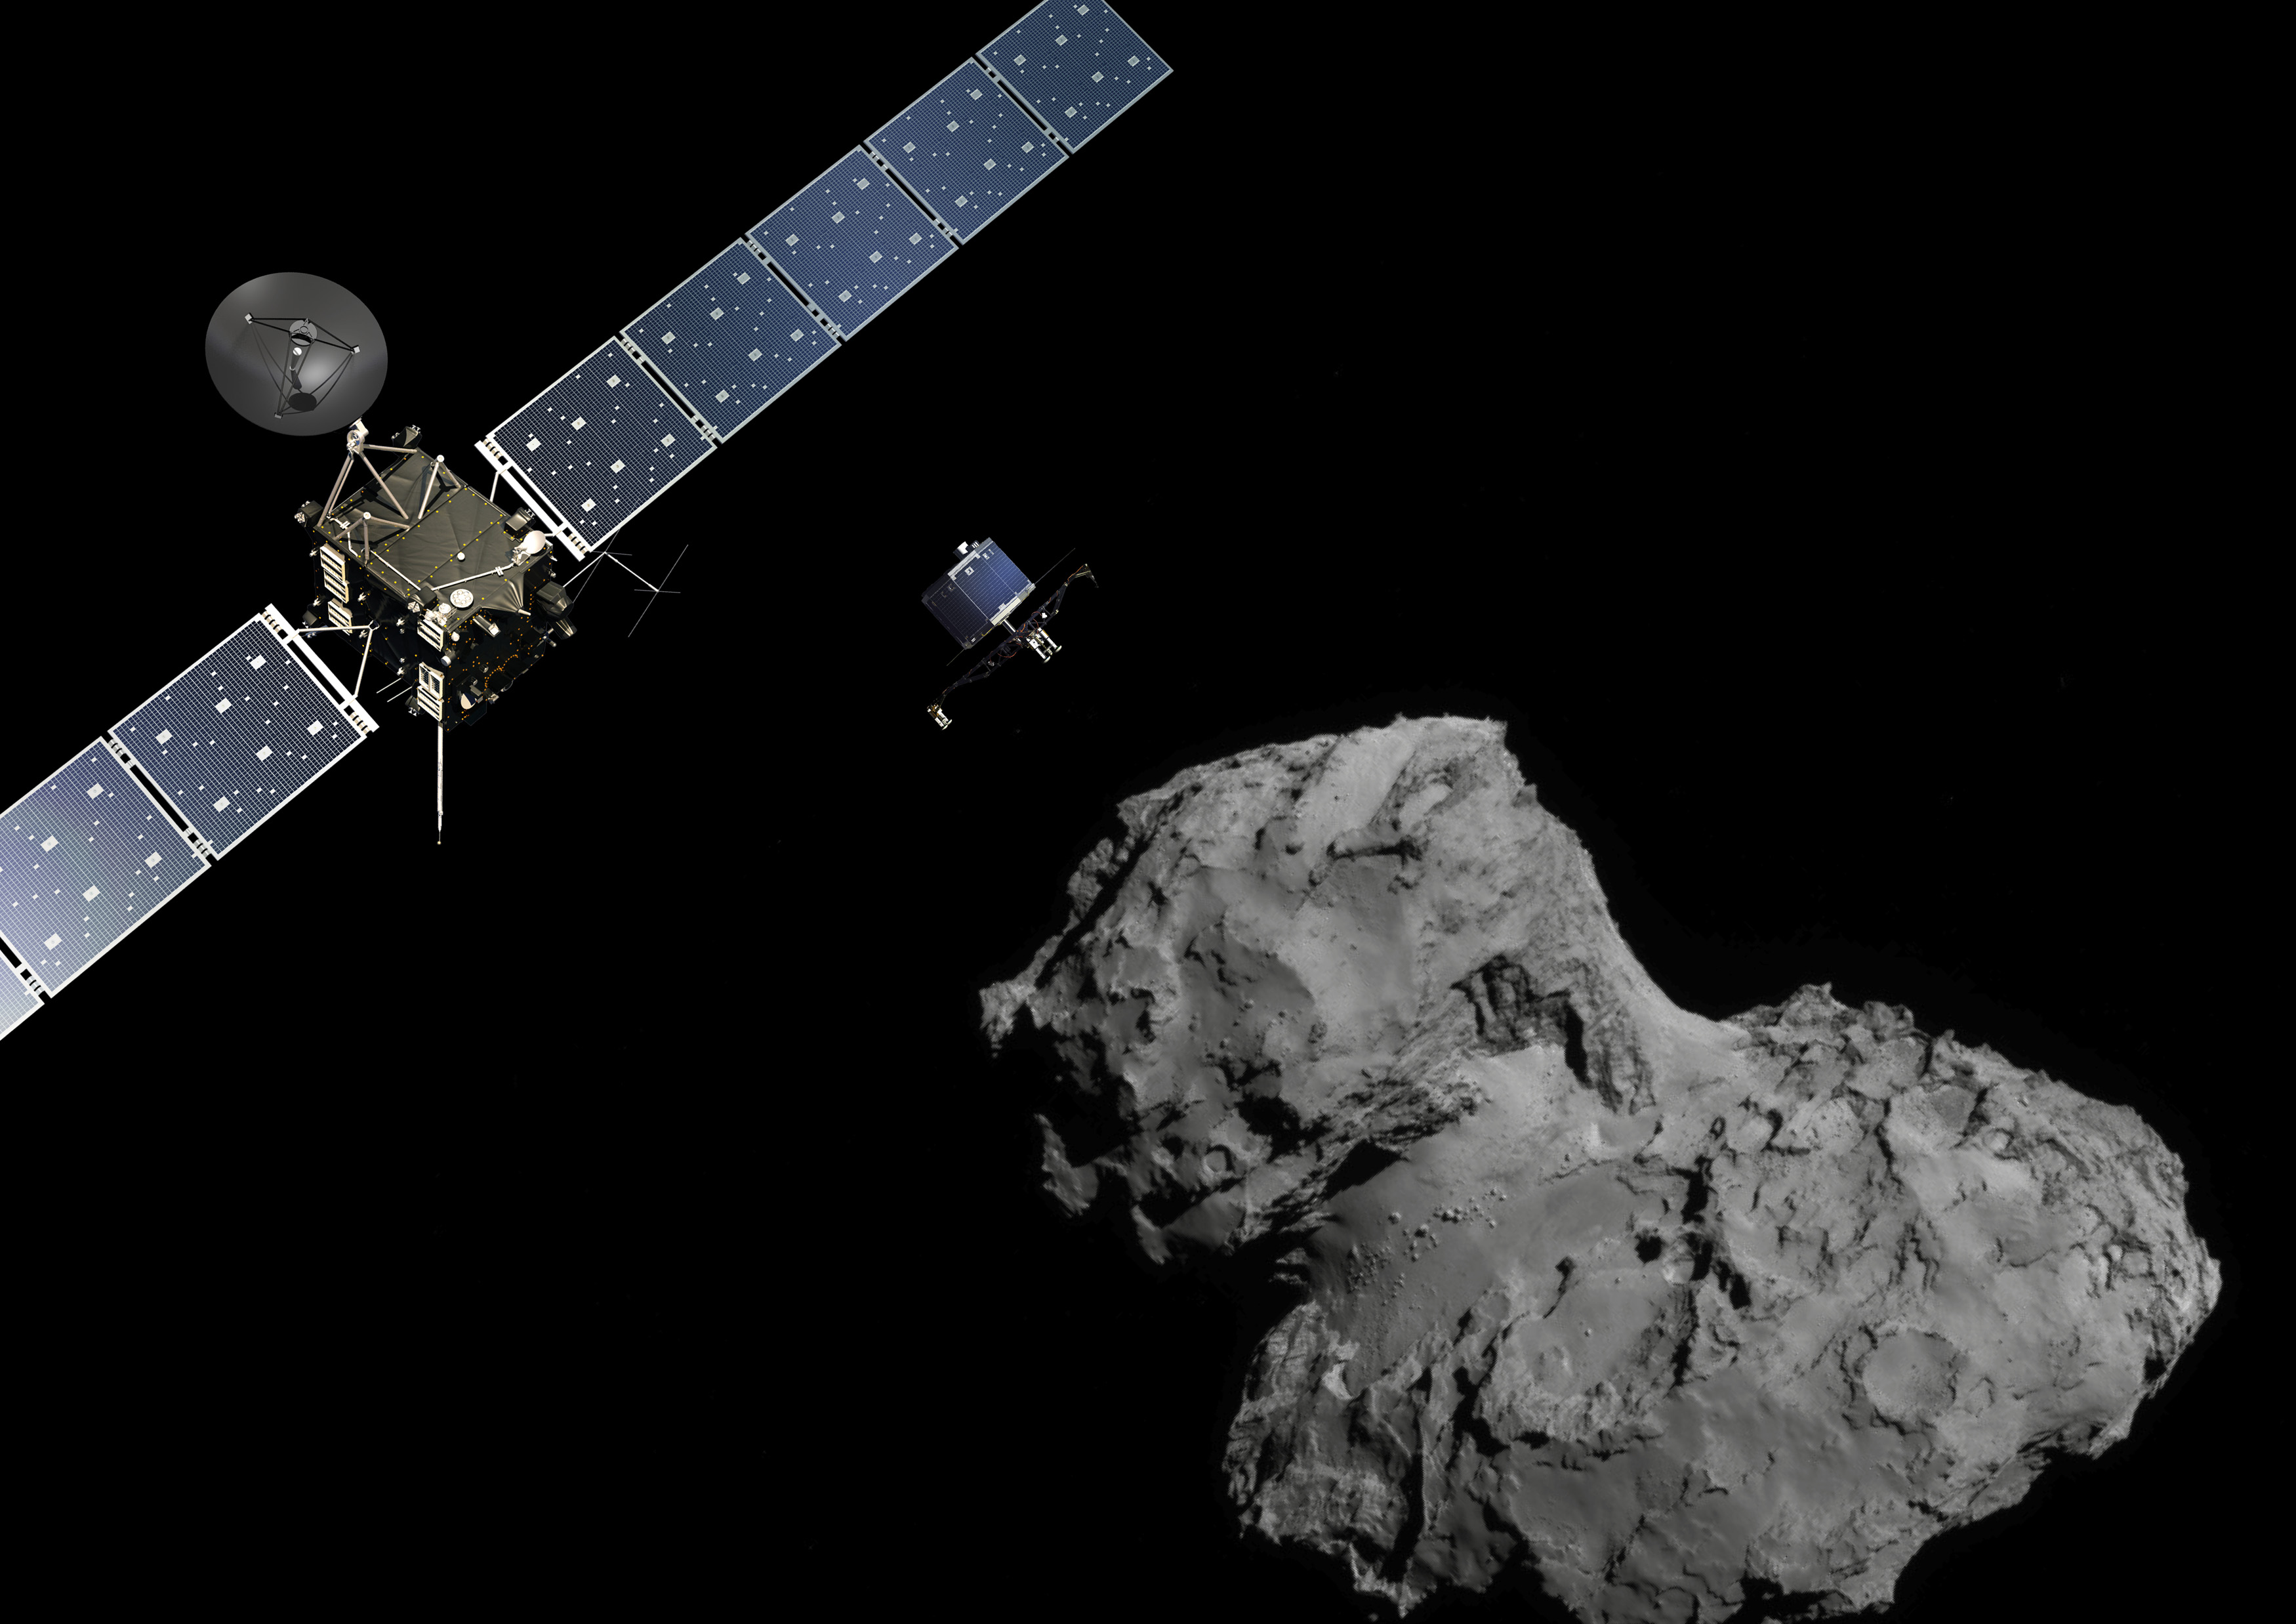 The Rosetta probe (L) and Philae lander are pictured above the 67P/Churyumov-Gerasimenko comet, November 10, 2014